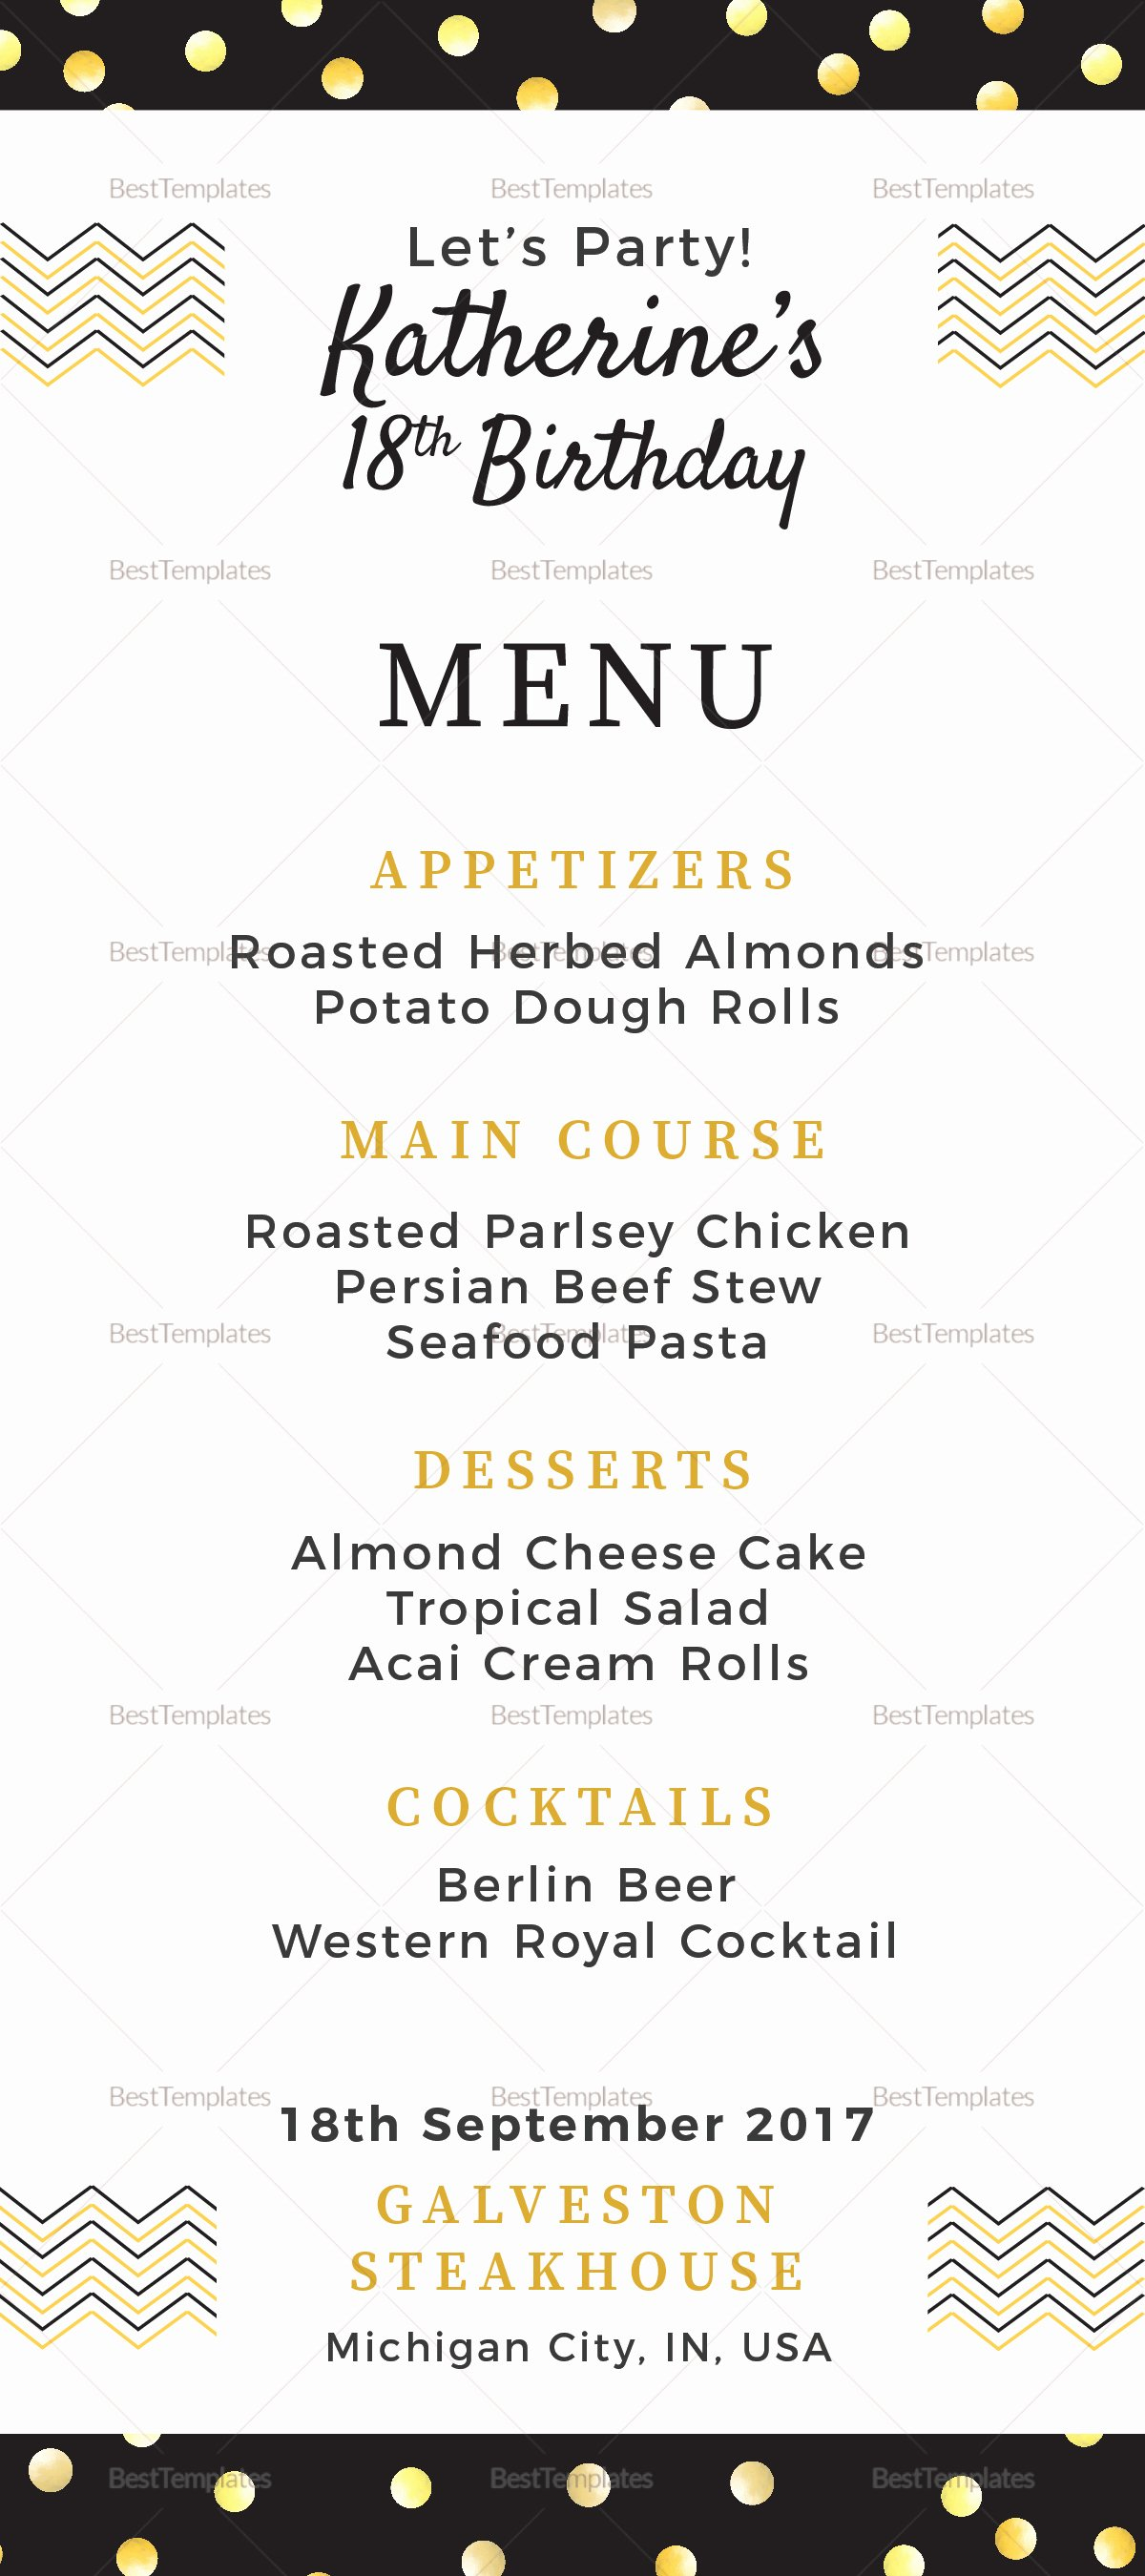 Free Dinner Party Menu Templates Awesome Birthday Dinner Party Menu Design Template In Psd Word